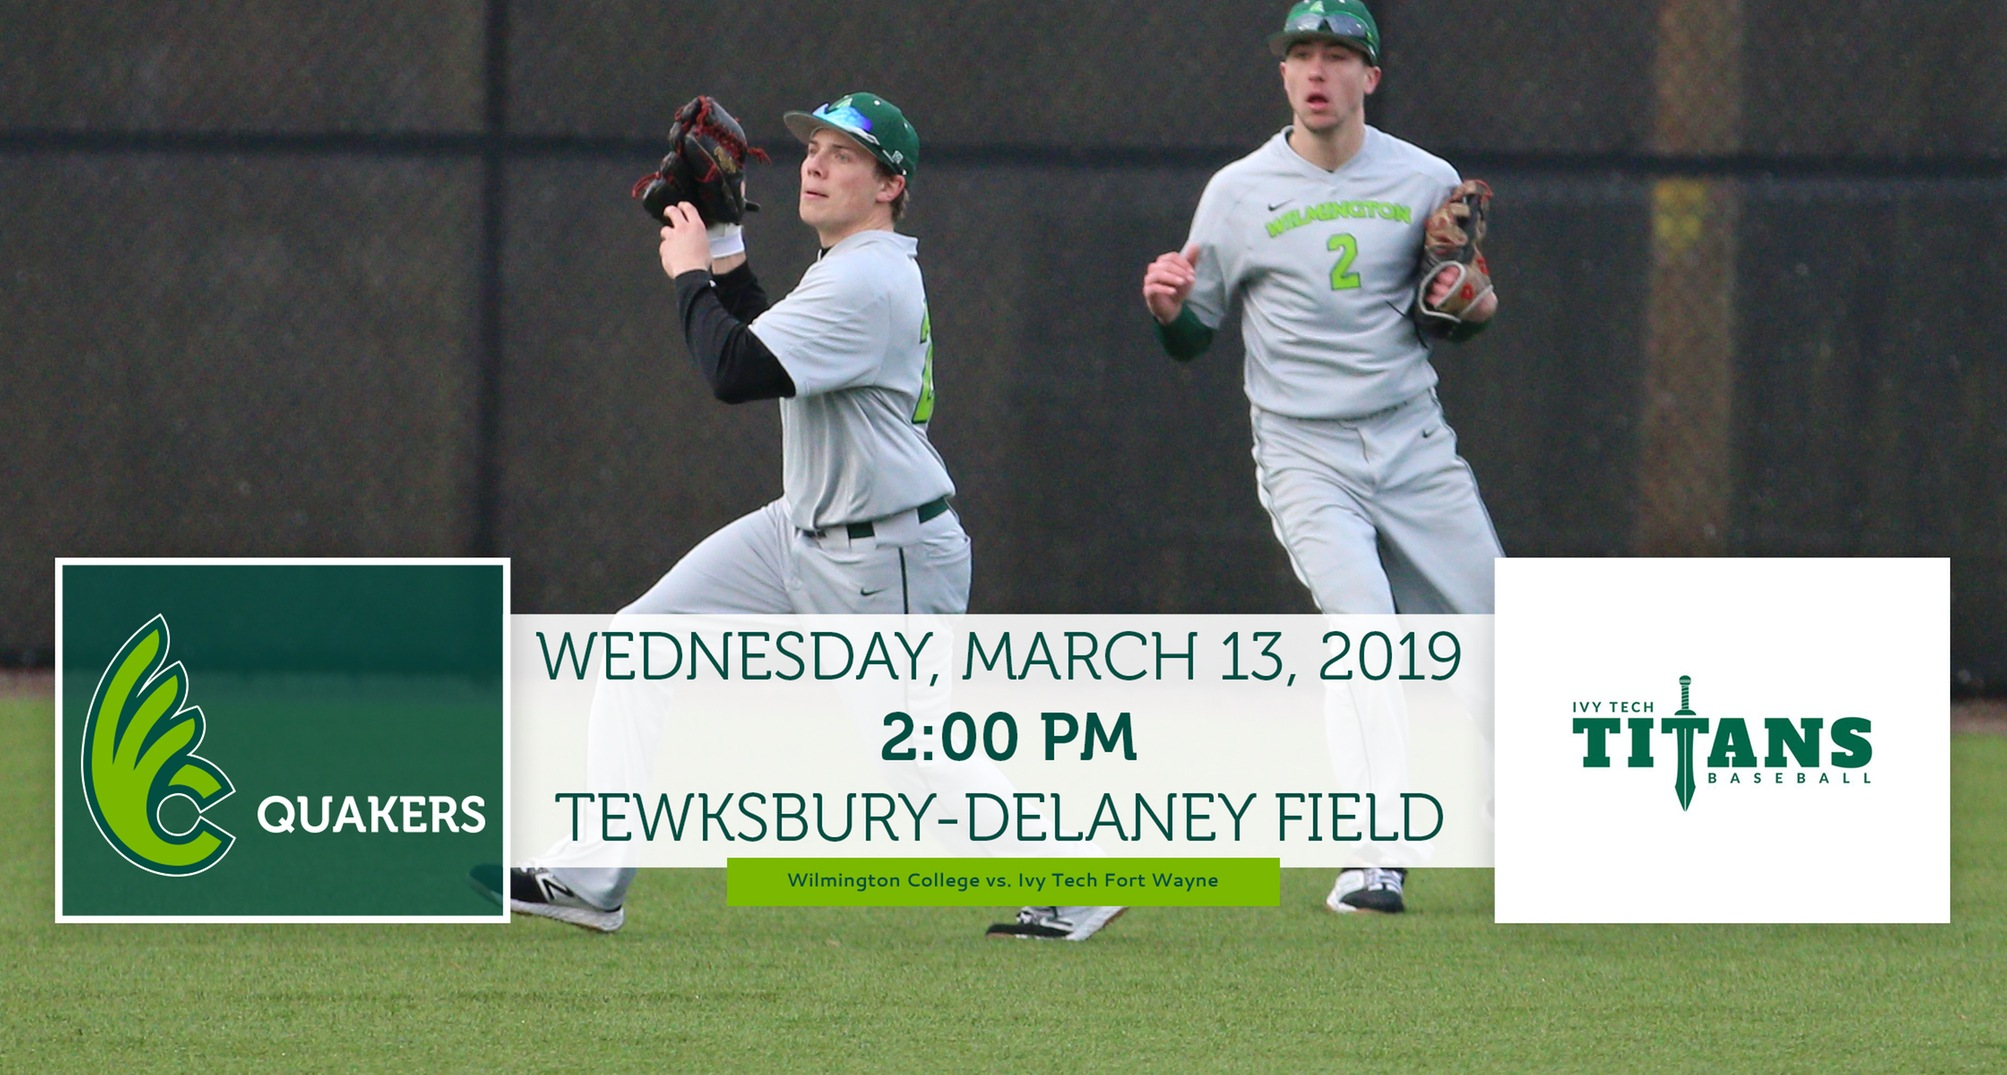 Baseball Hosts Ivy Tech Fort Wayne in Home Opener on Wednesday